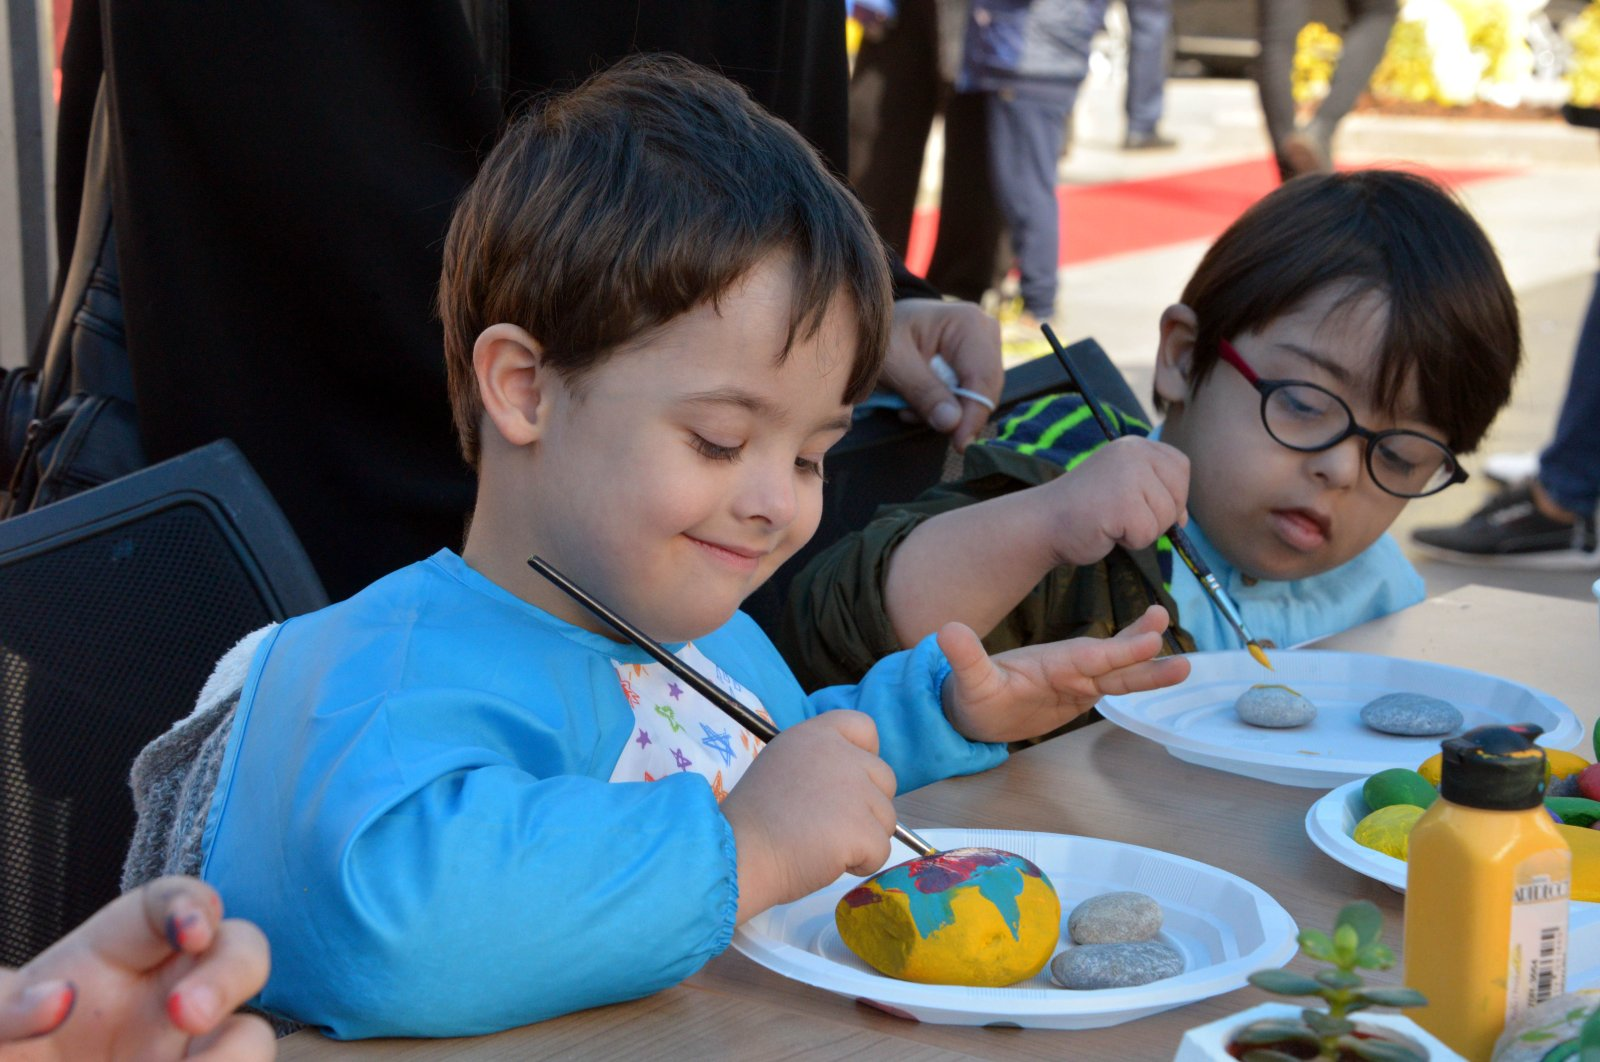 Children with Down syndrome enjoy a special event organized by the Onikişubat Municipality in southern Kahramanmaraş province on the World Down Syndrome Day, Mar. 21, 2021 (DHA Photo)